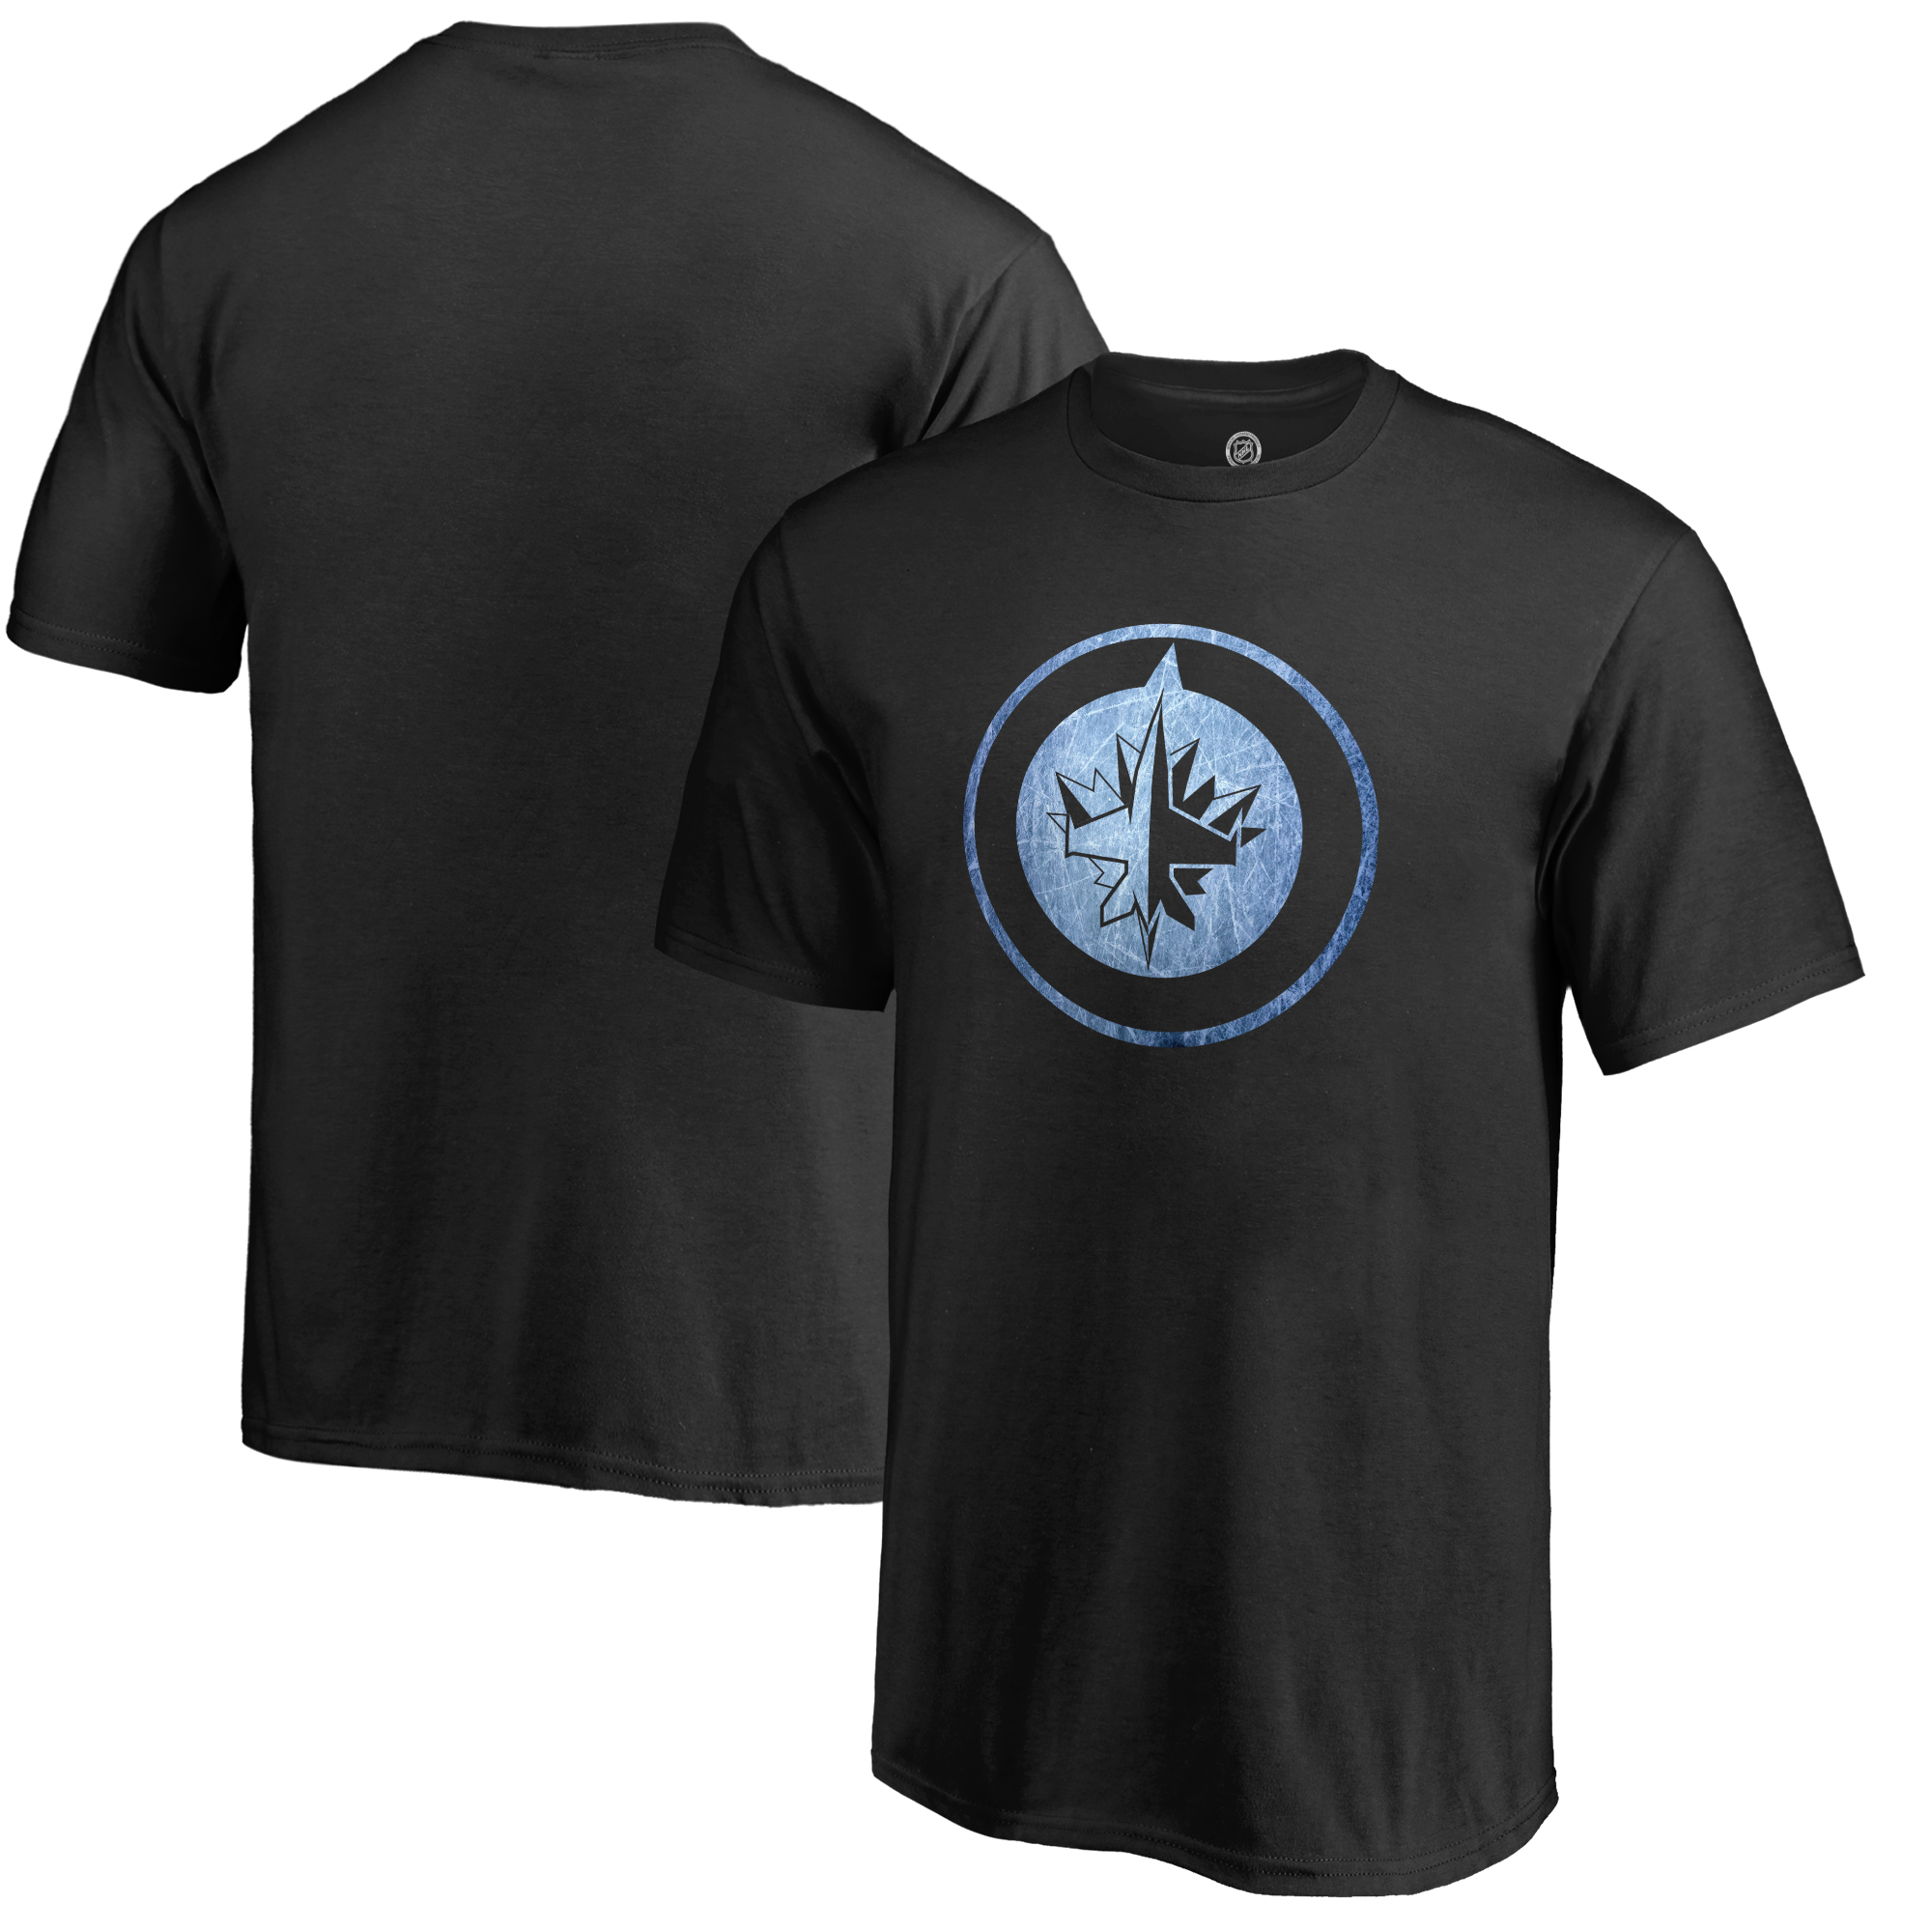 Winnipeg Jets Youth Pond Hockey T-Shirt Black by Football Fanatics/Ruppshirts